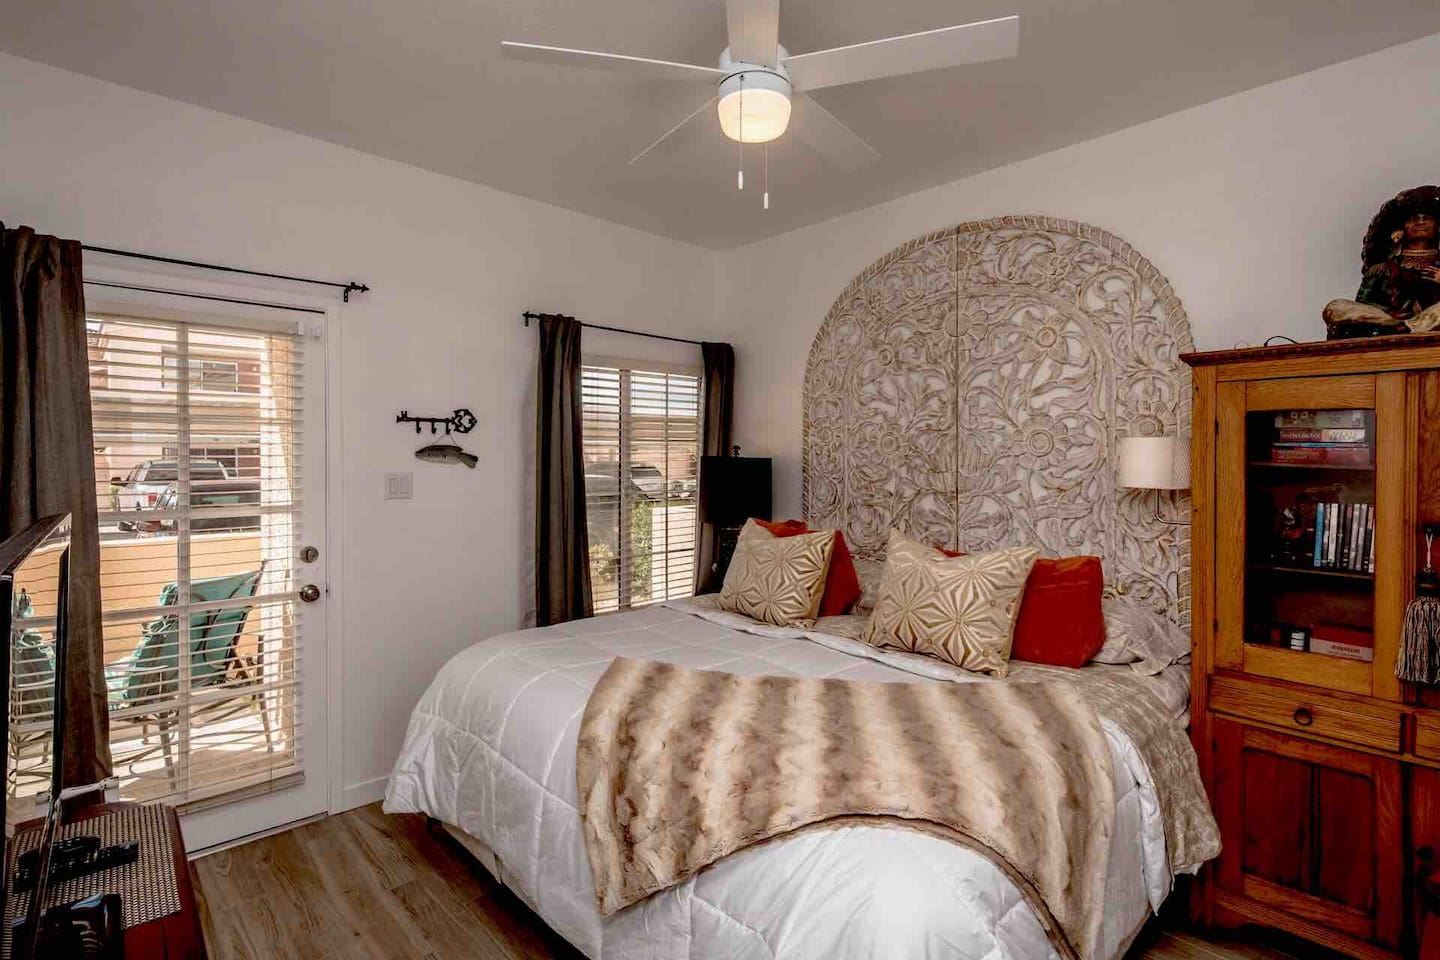 End your day with a great nights sleep in the Master suite with king size bed and hotel quality sheets. Cable television with DVD player  located conveniently at foot of the bed. Slip out for a look at the nights sky with private access to patio.